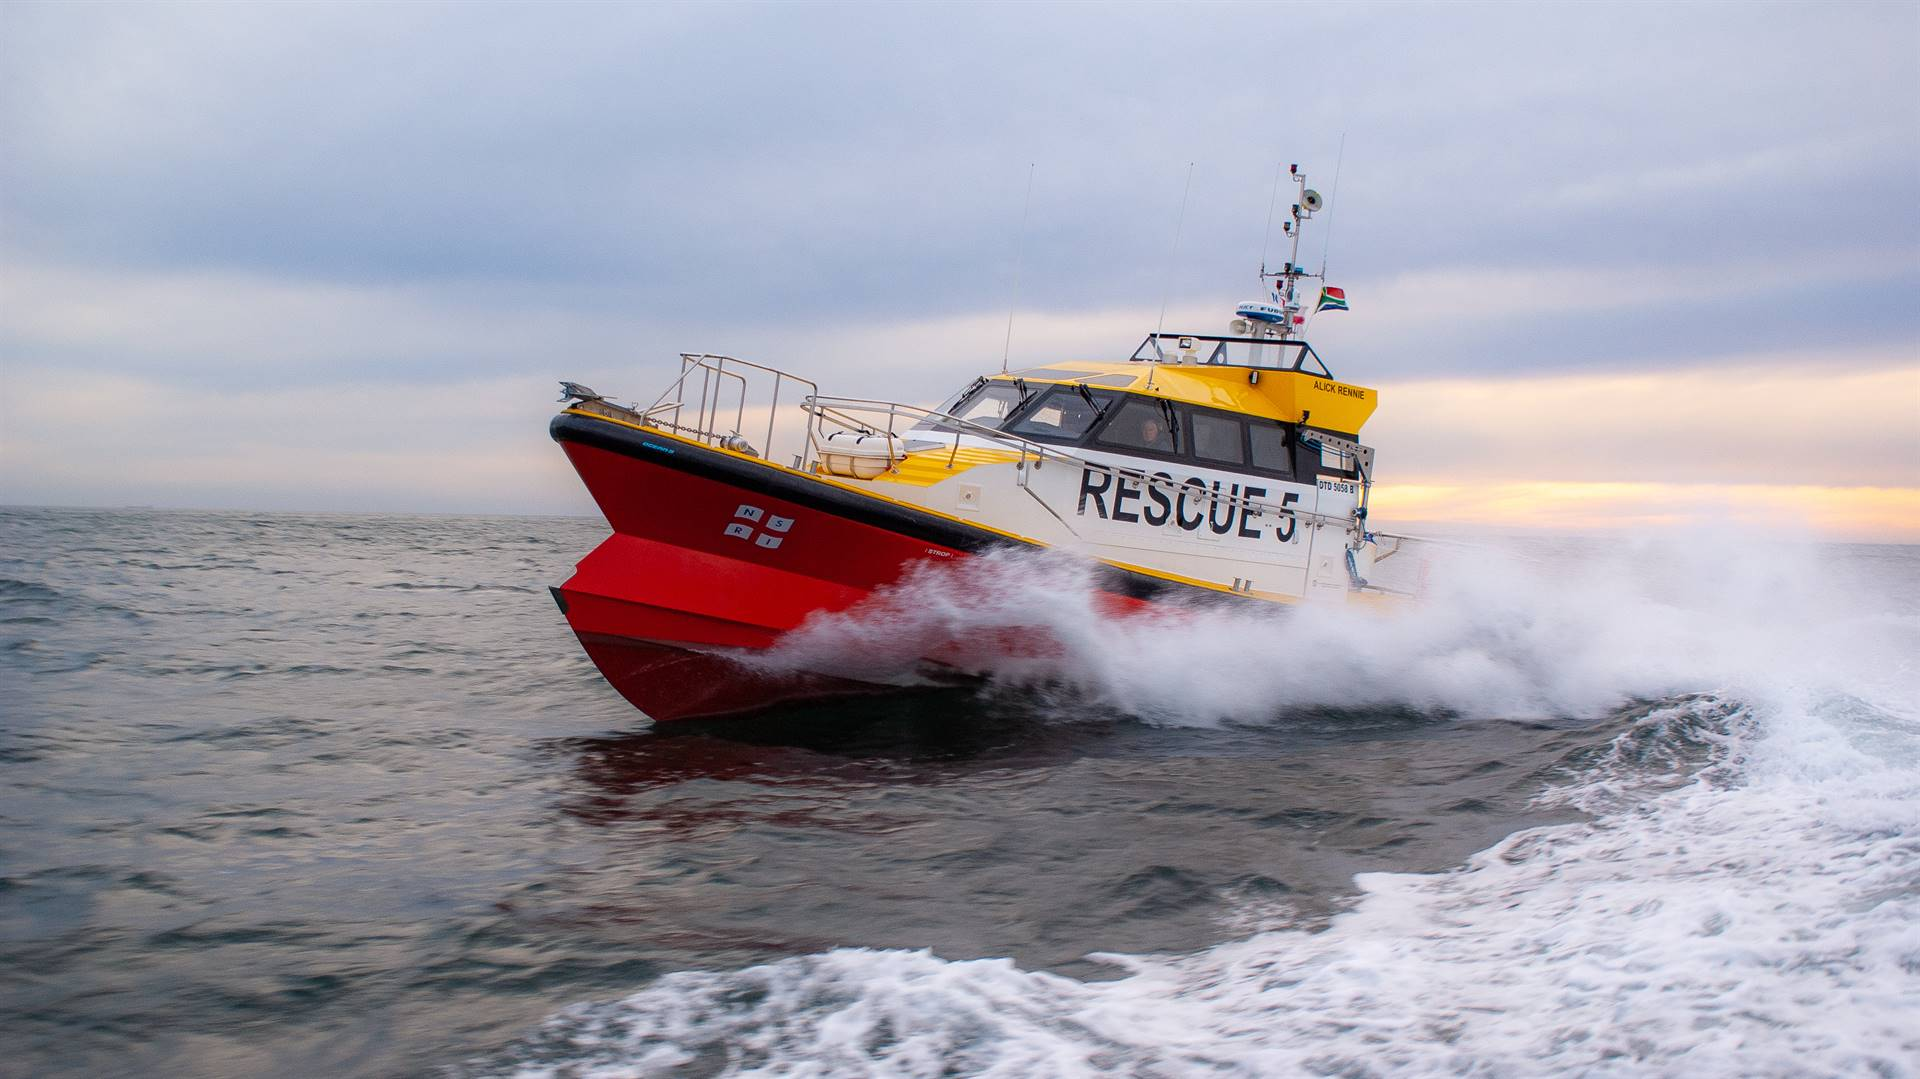 News24.com | Two missing, one dead in Western Cape drownings